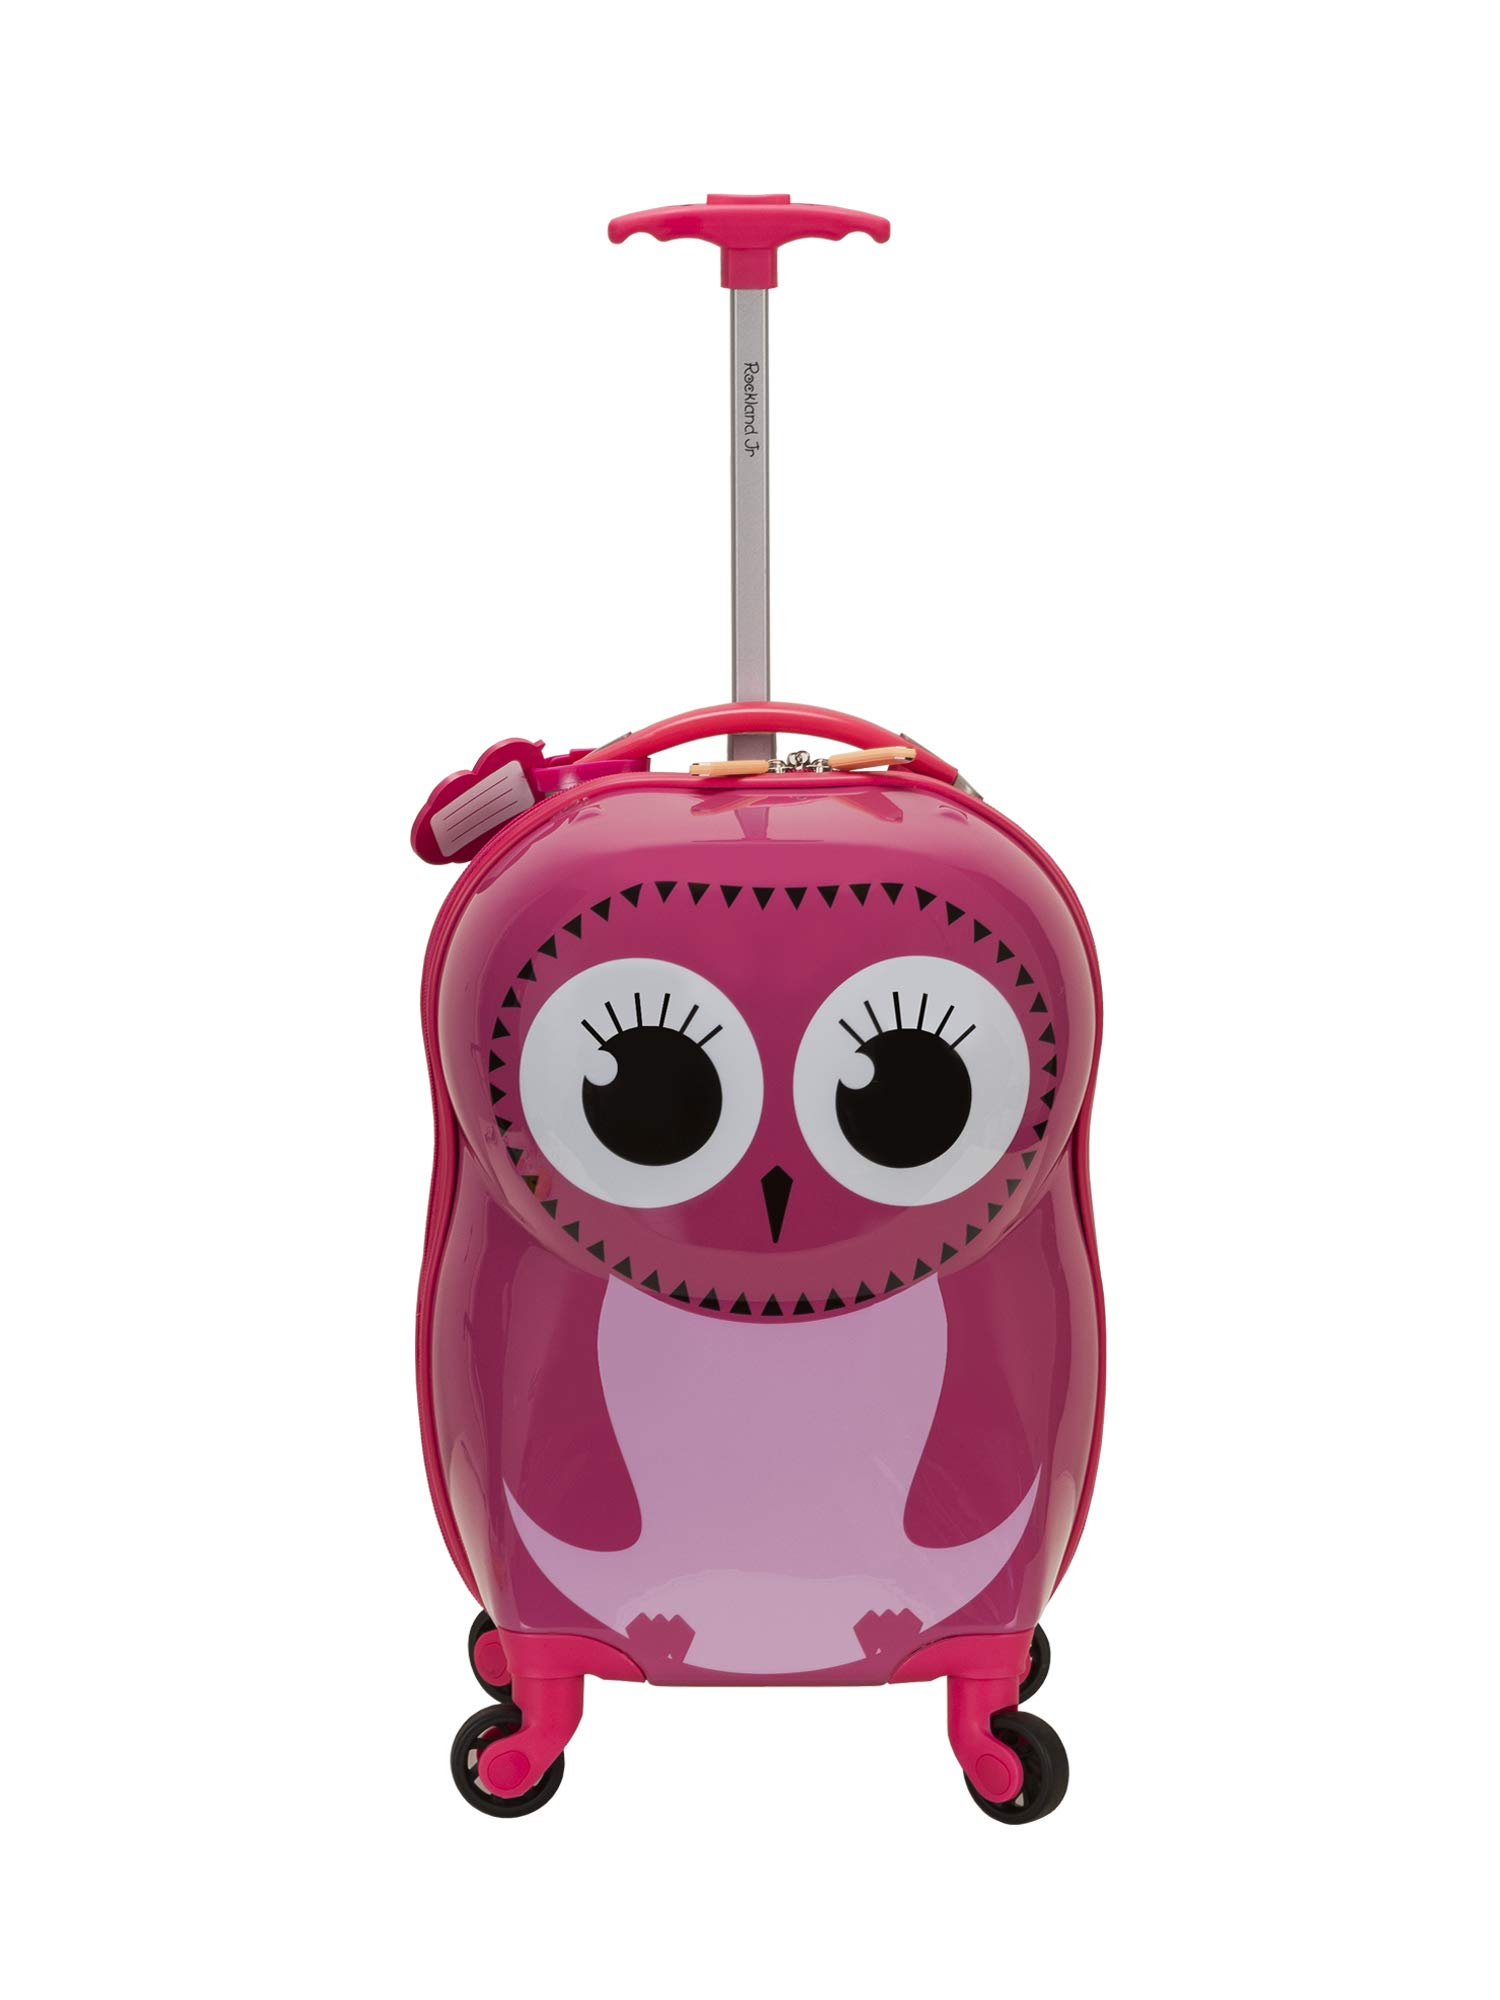 Rockland Jr. Kids' My First Luggage-Polycarbonate Hard Side Spinner, OWL by Rockland